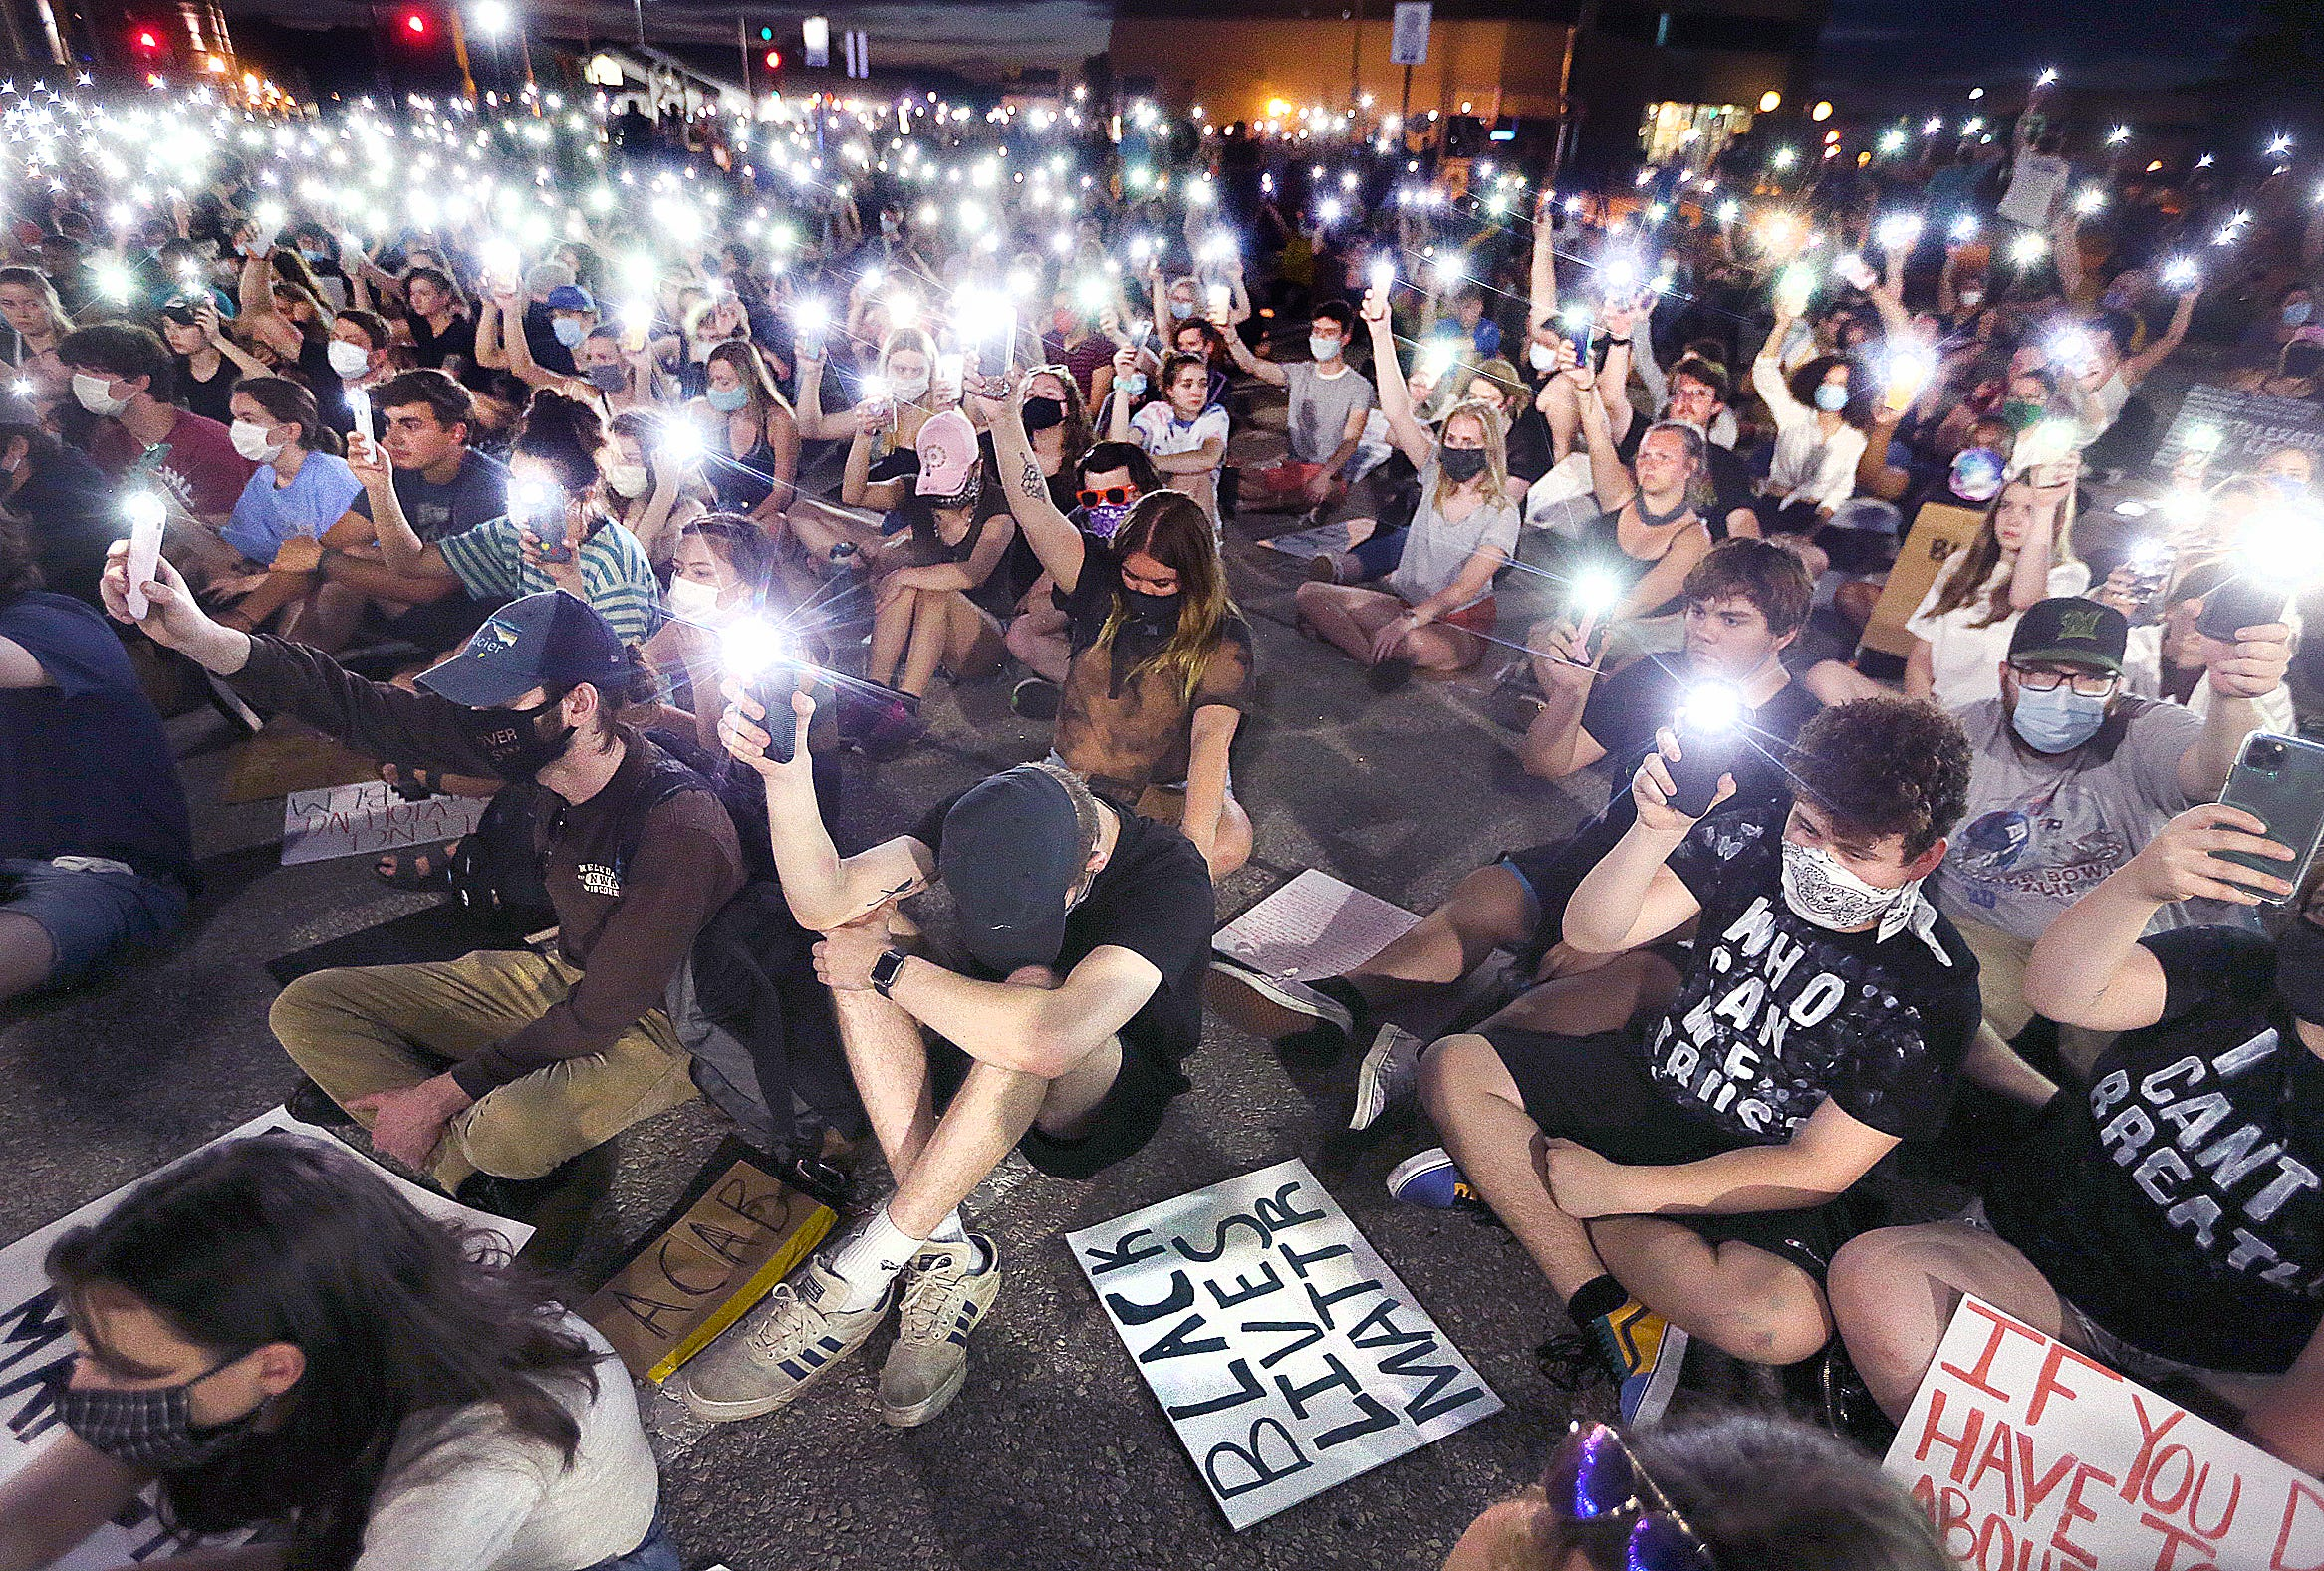 Demonstrators raise the flashlights on their cell phones City Hall during a nine-minute period of silence to honor George Floyd who, according to an autopsy, died of asphyxiation after being restrained by a Minneapolis Police officer for nine minutes. A crowd of about 700 people, estimated by the La Crosse Police Department, was present for the Justice for George Floyd rally that began in Riverside Park.